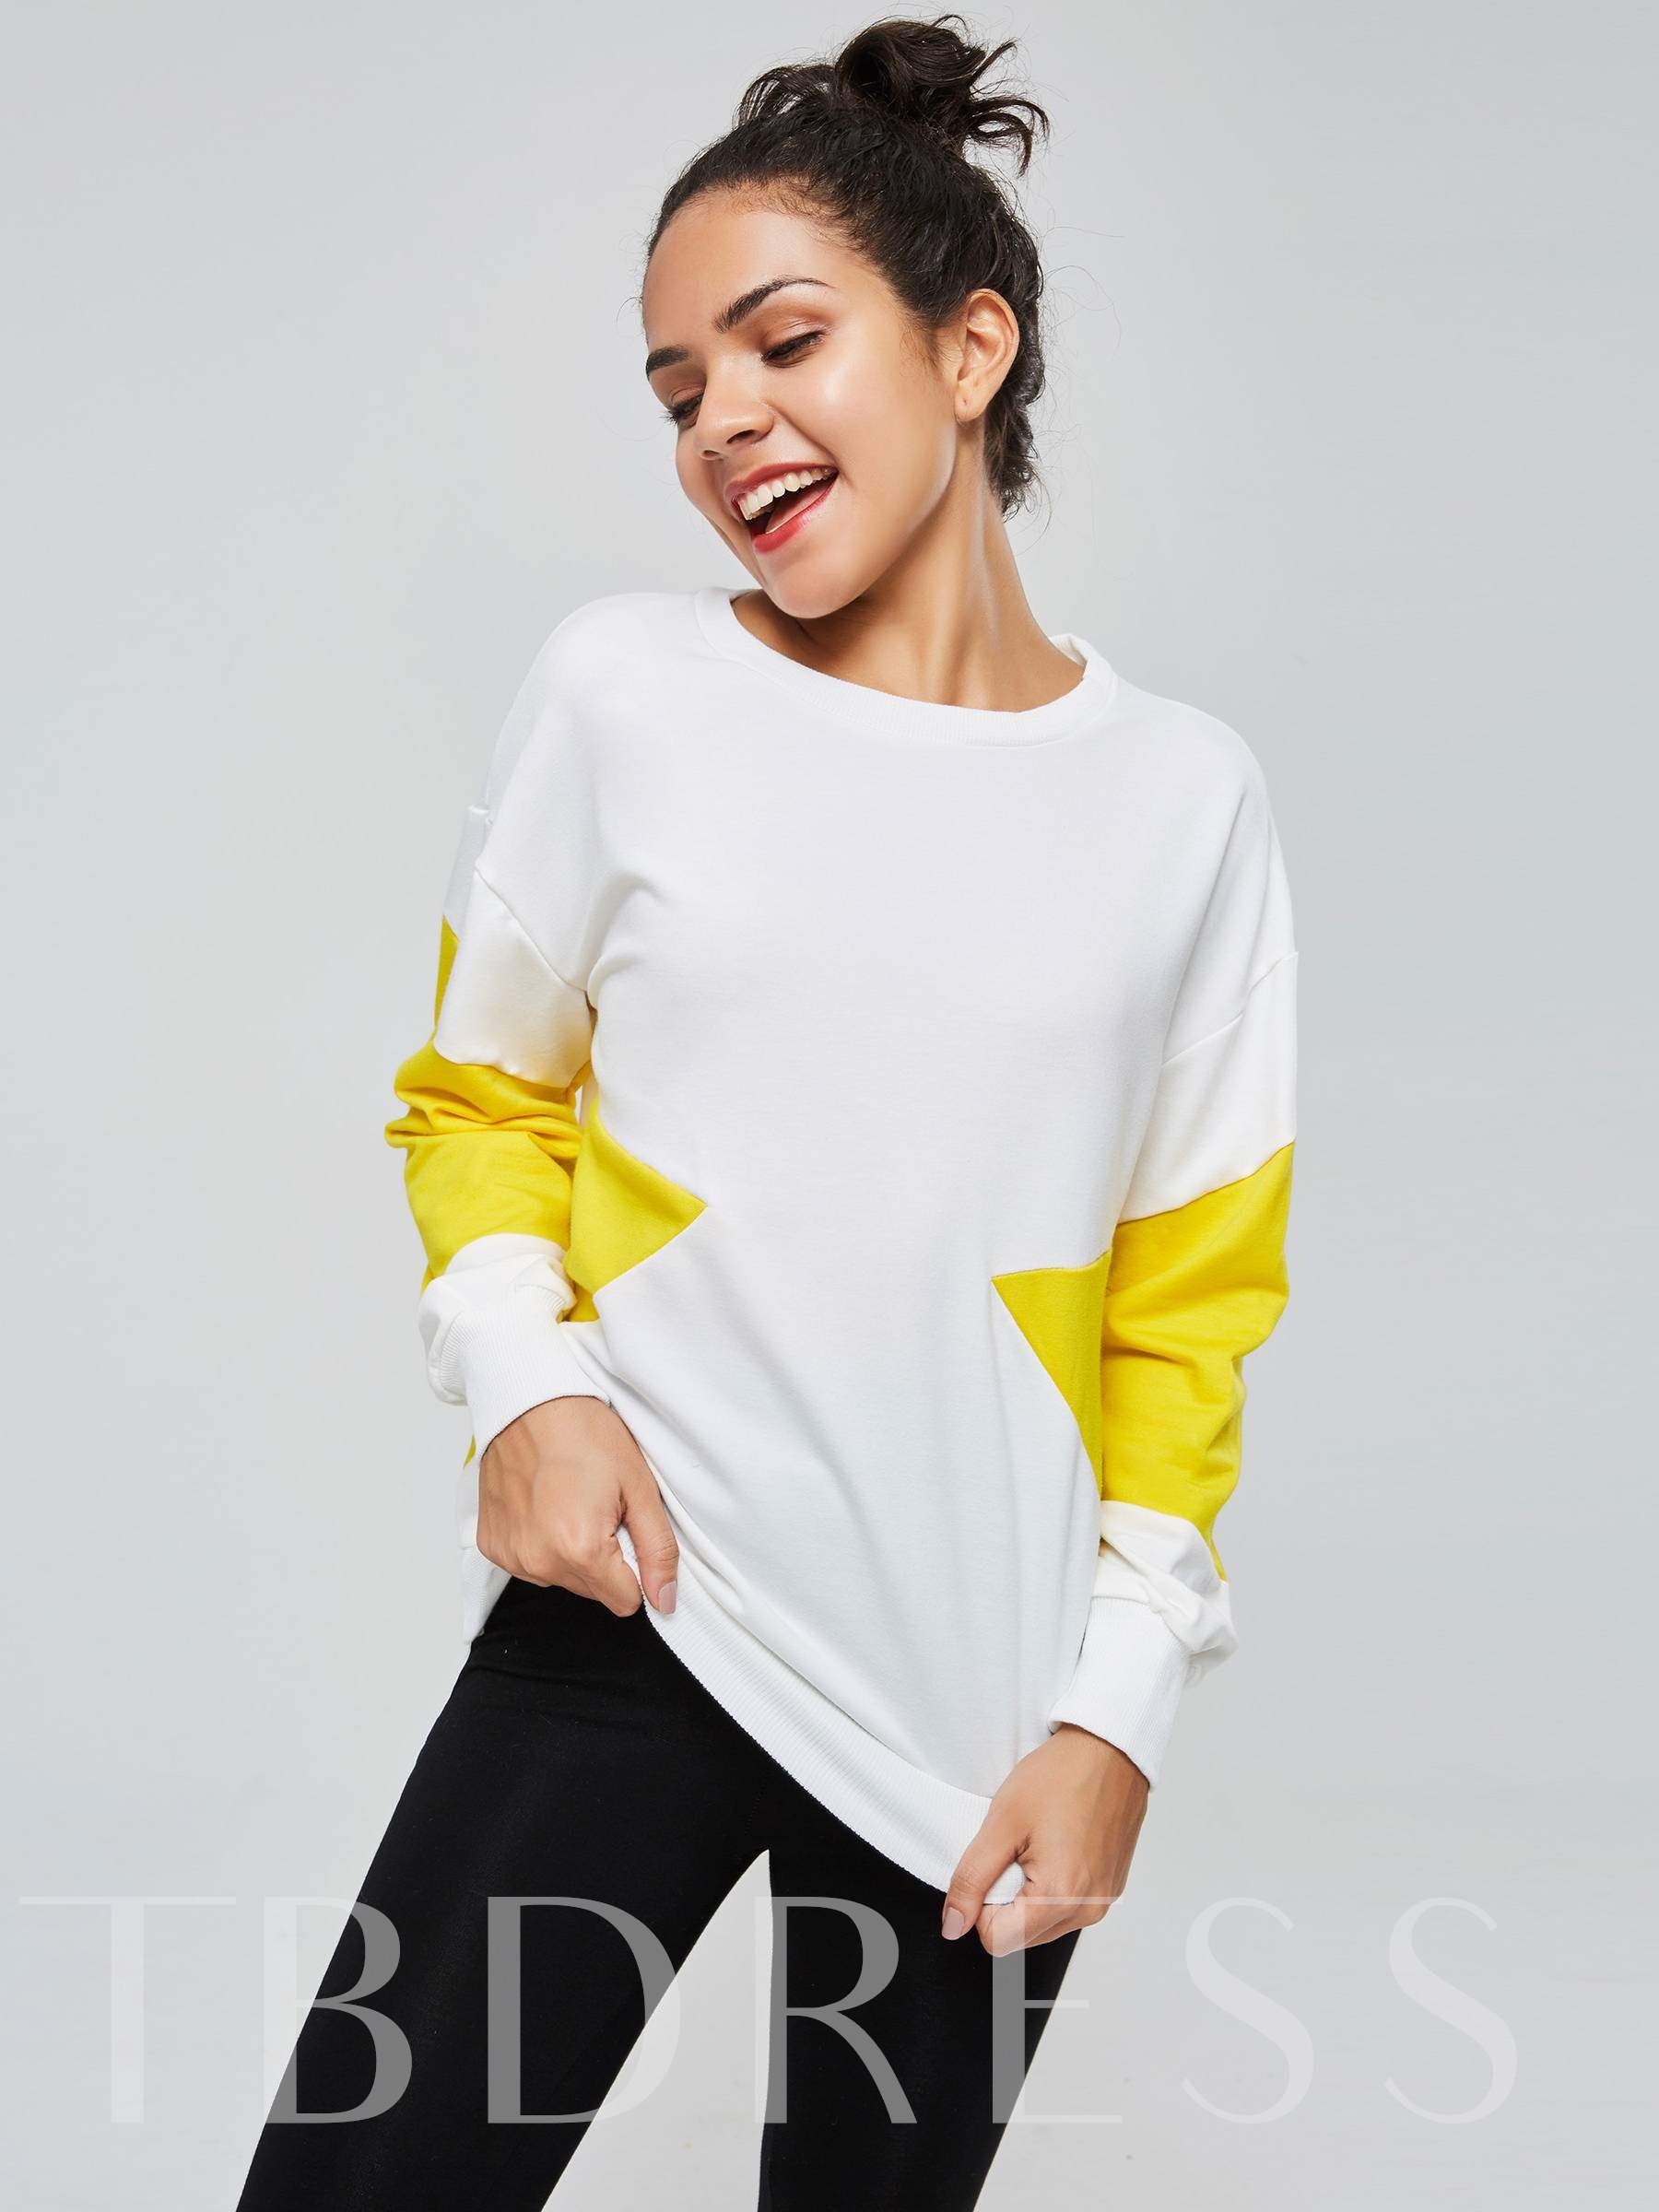 Buy Color Block Long Sleeve Women's Sweatshirt, Fall,Winter, 13382436 for $12.87 in TBDress store